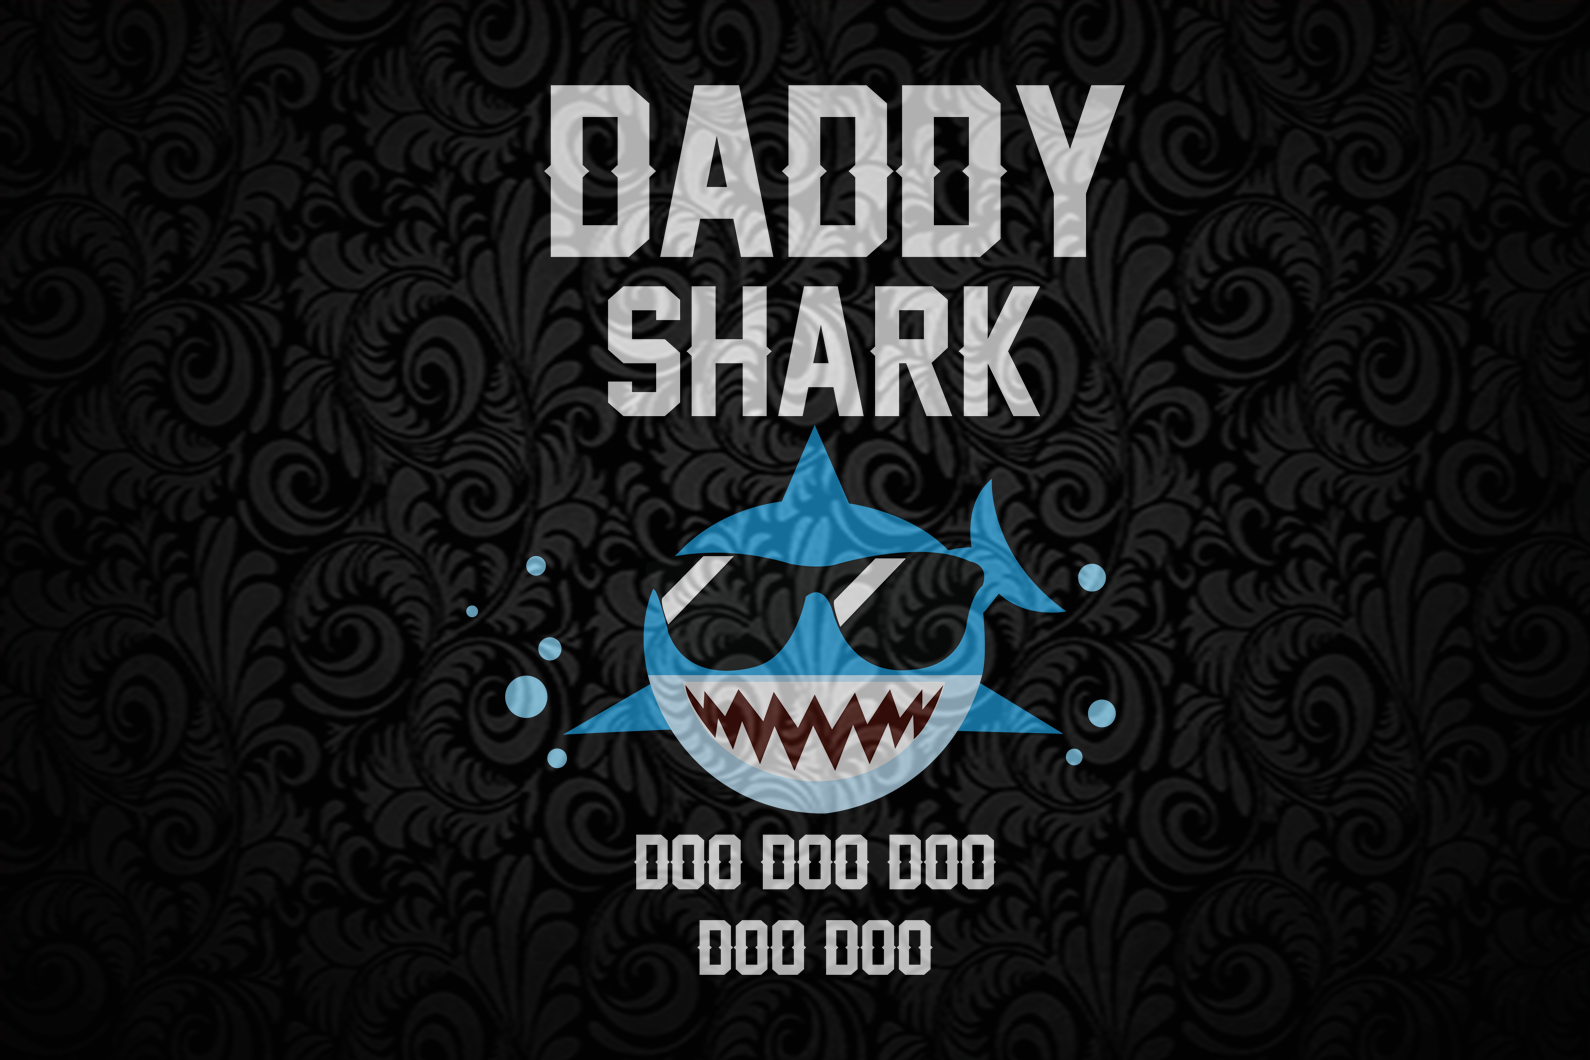 Daddy shark doo doo doo svg, fathers day svg, fathers day svg, fathers day gift, gift for papa, fathers day lover, fathers day lover gift, dad life, dad svg, family life svg, Files For Silhouette, Files For Cricut, SVG, DXF, EPS, PNG, Instant Download